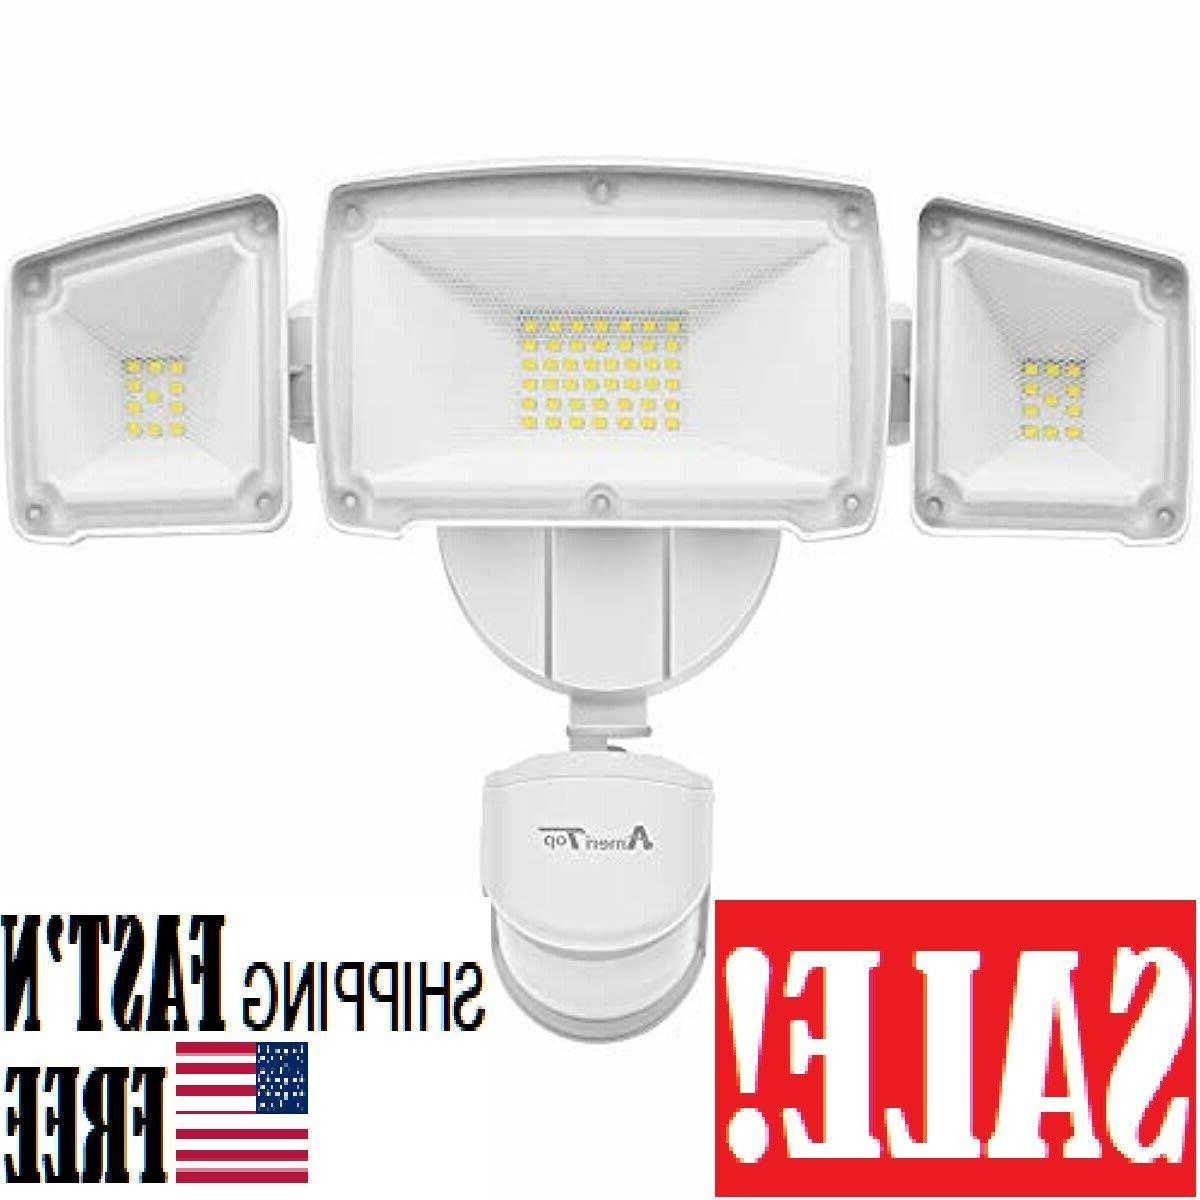 motion sensor lights outdoor ultra bright 3500lm